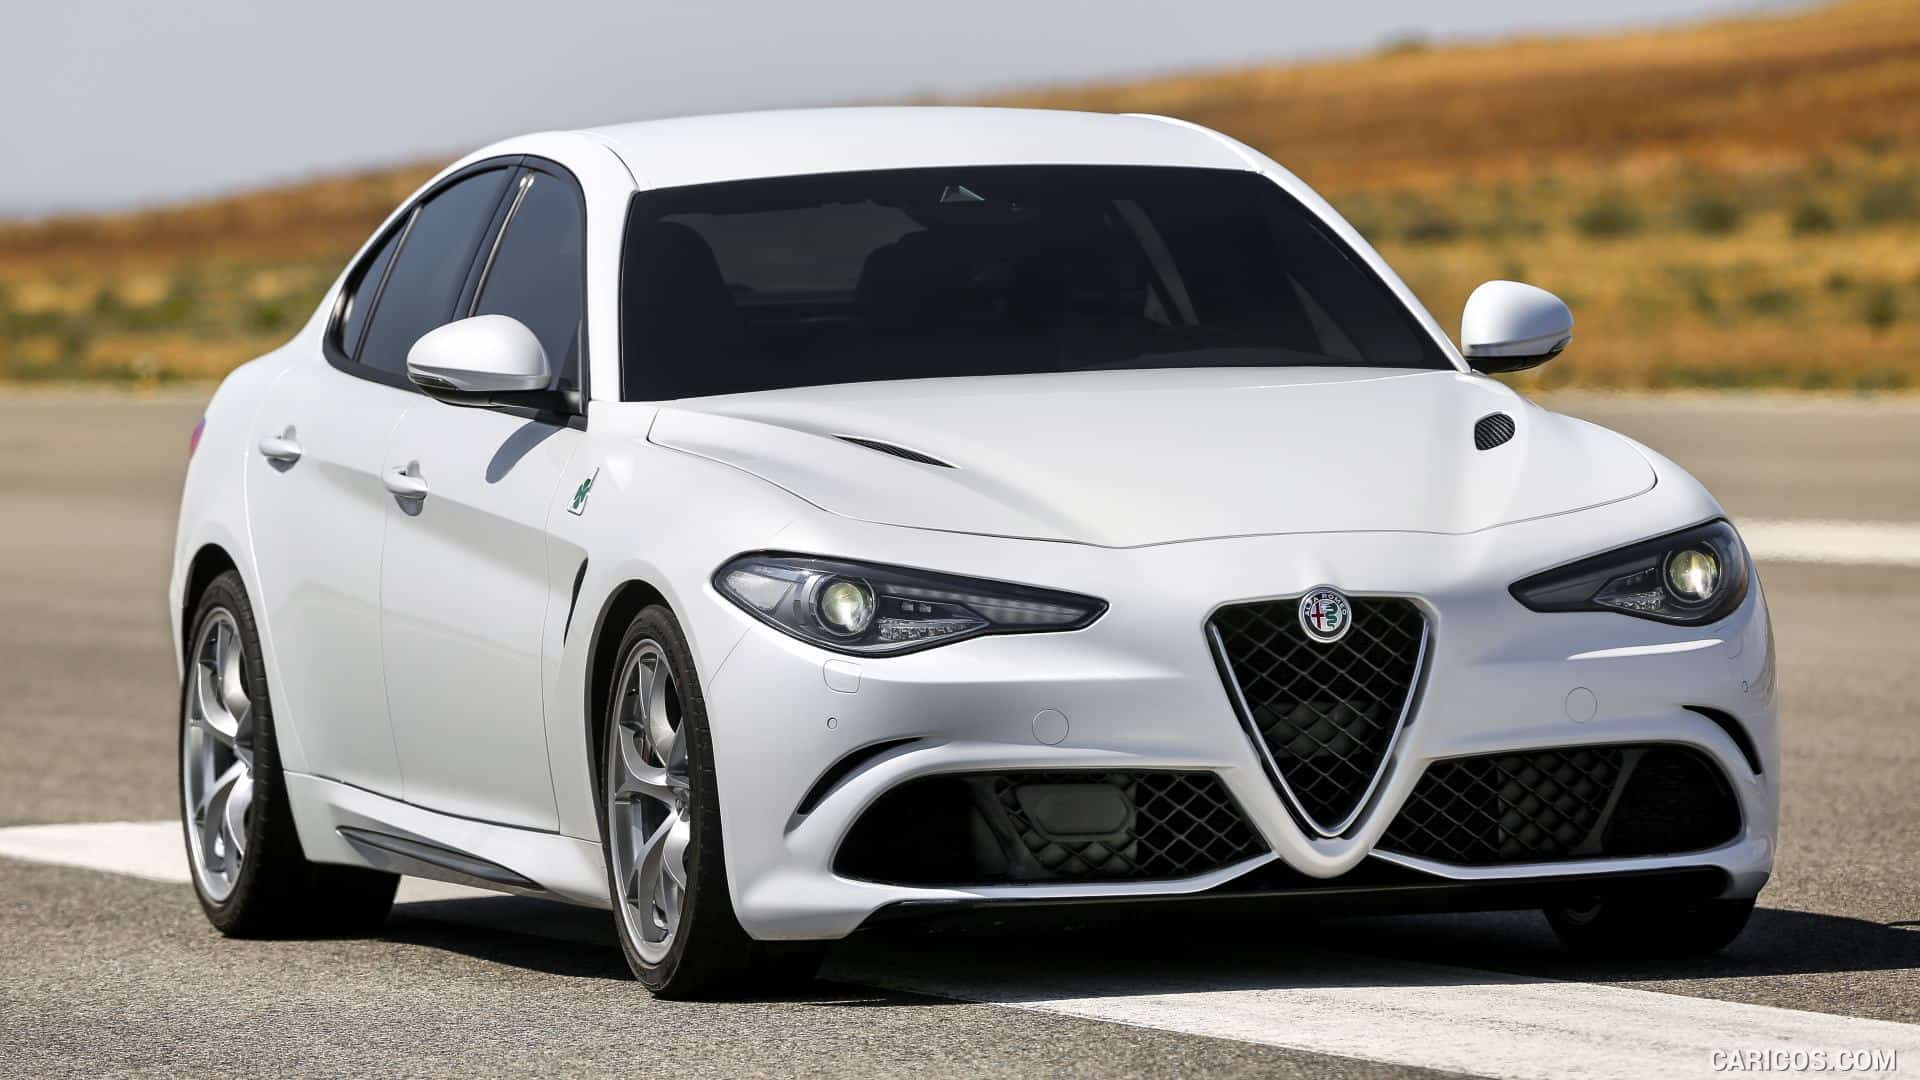 luxury car brands alfa romeo  2016 Alfa Romeo Giulia Review - Global Cars Brands